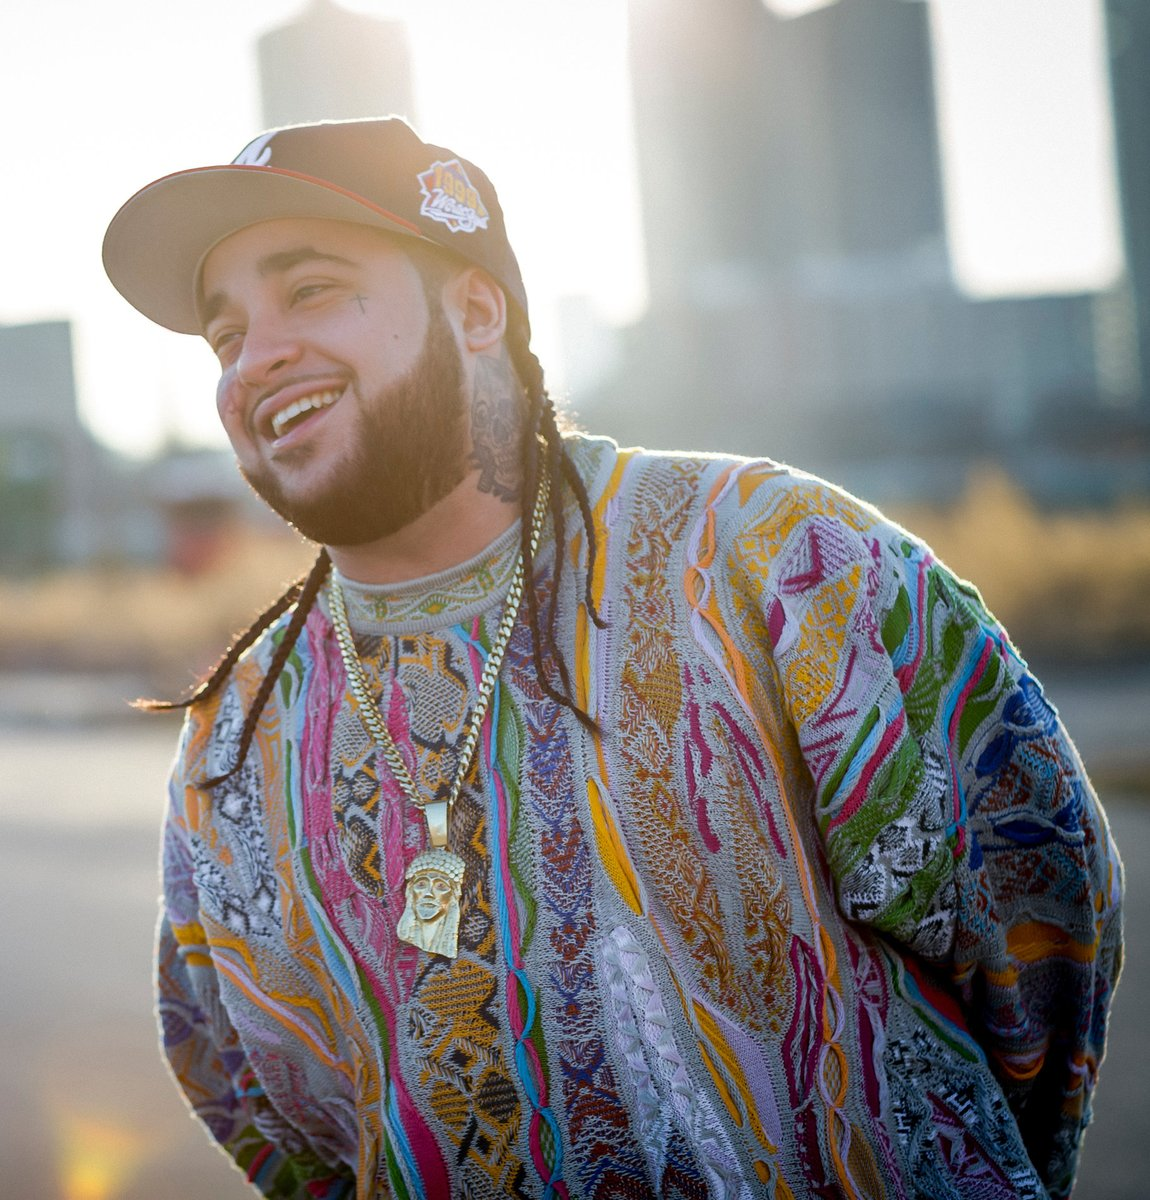 Replying to @ComplexMusic: LONG LIVE A$AP YAMS 🕊  He passed away 6 years ago today. Rest in peace.